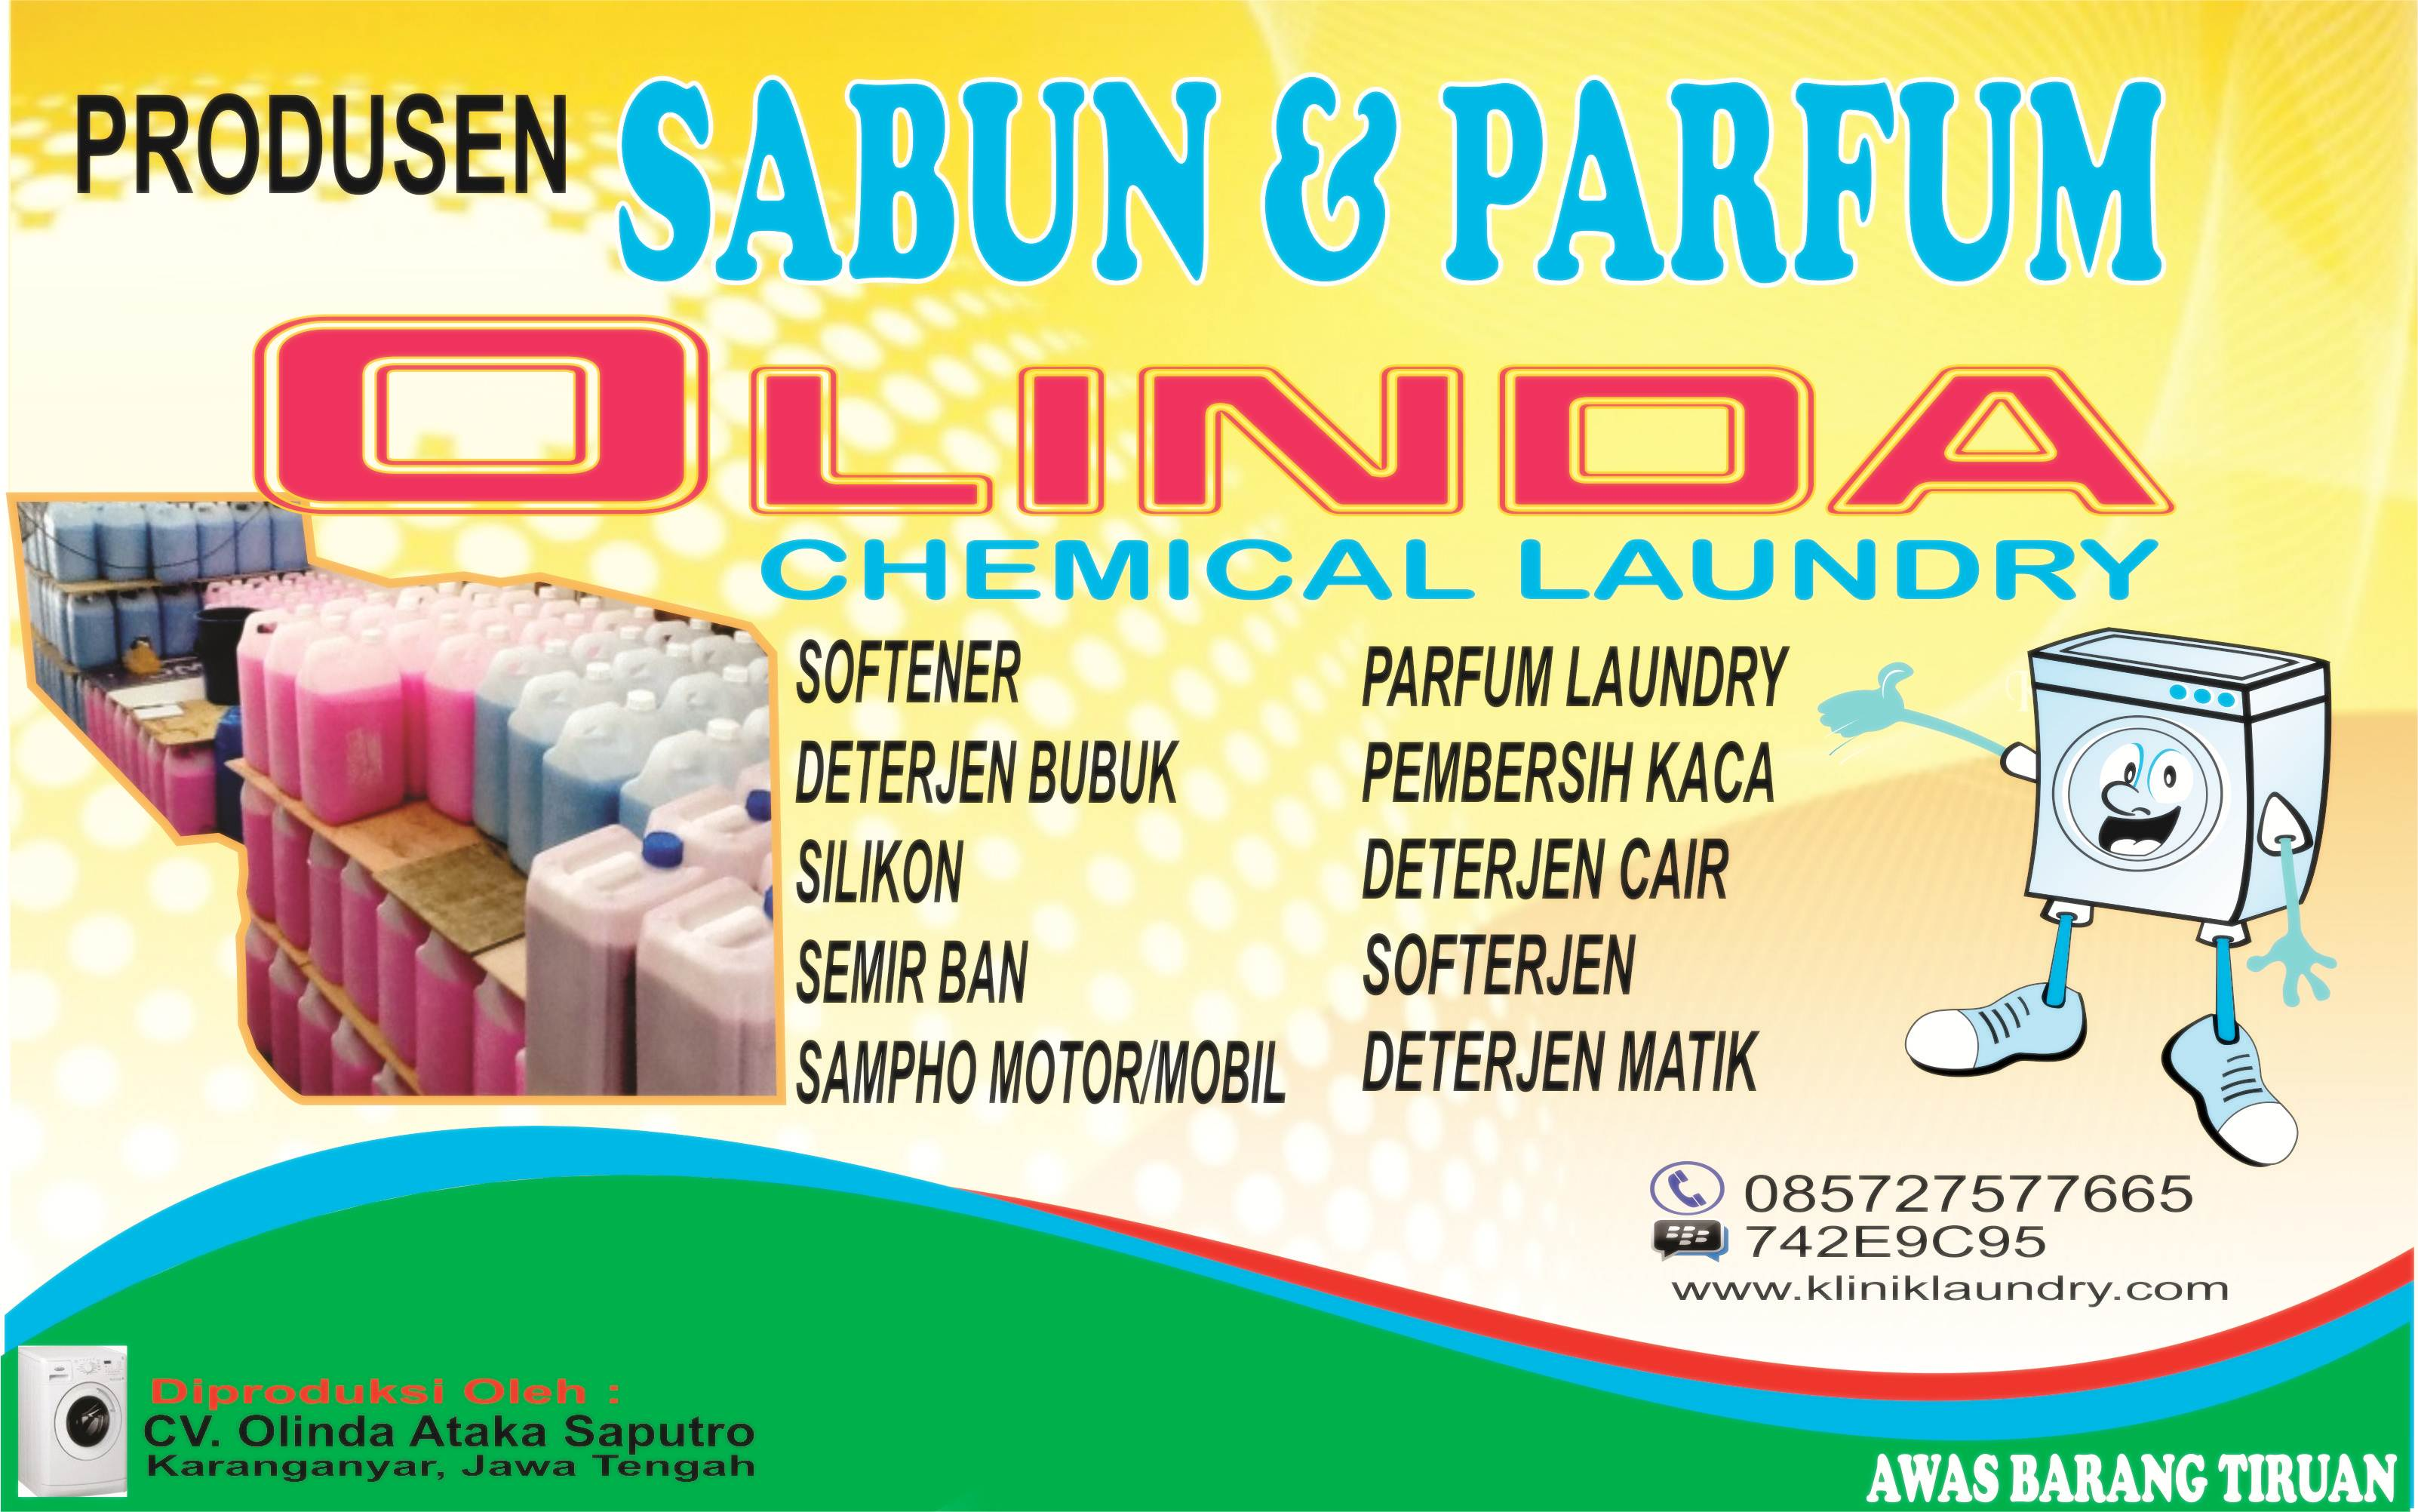 Mesin Cuci Baju Kliniklaundry | Chemical & Equipment Supplier Laundry